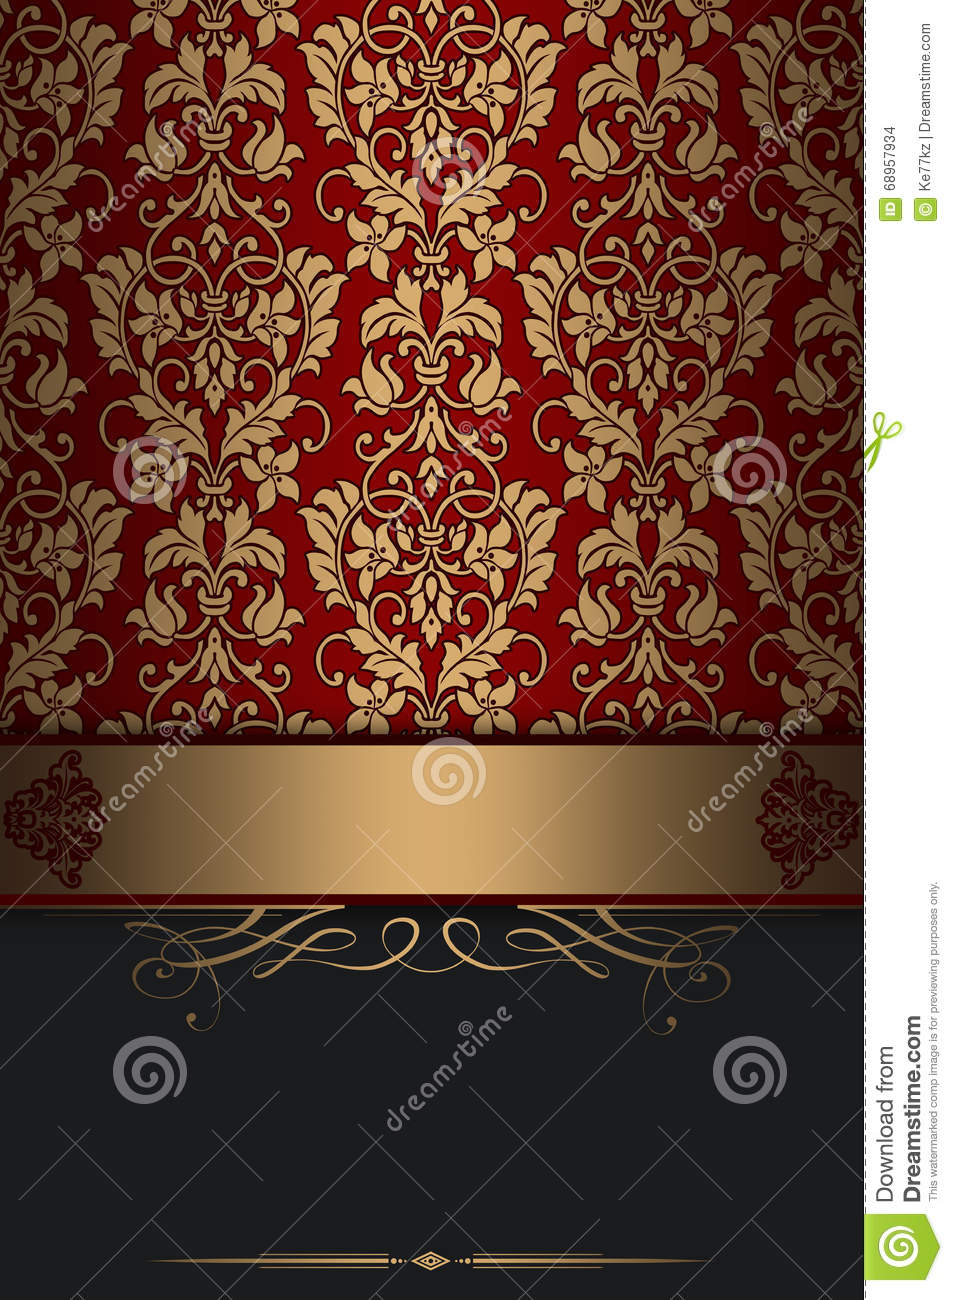 Old Fashioned Book Cover Design : Decorative vintage background with elegant patterns stock